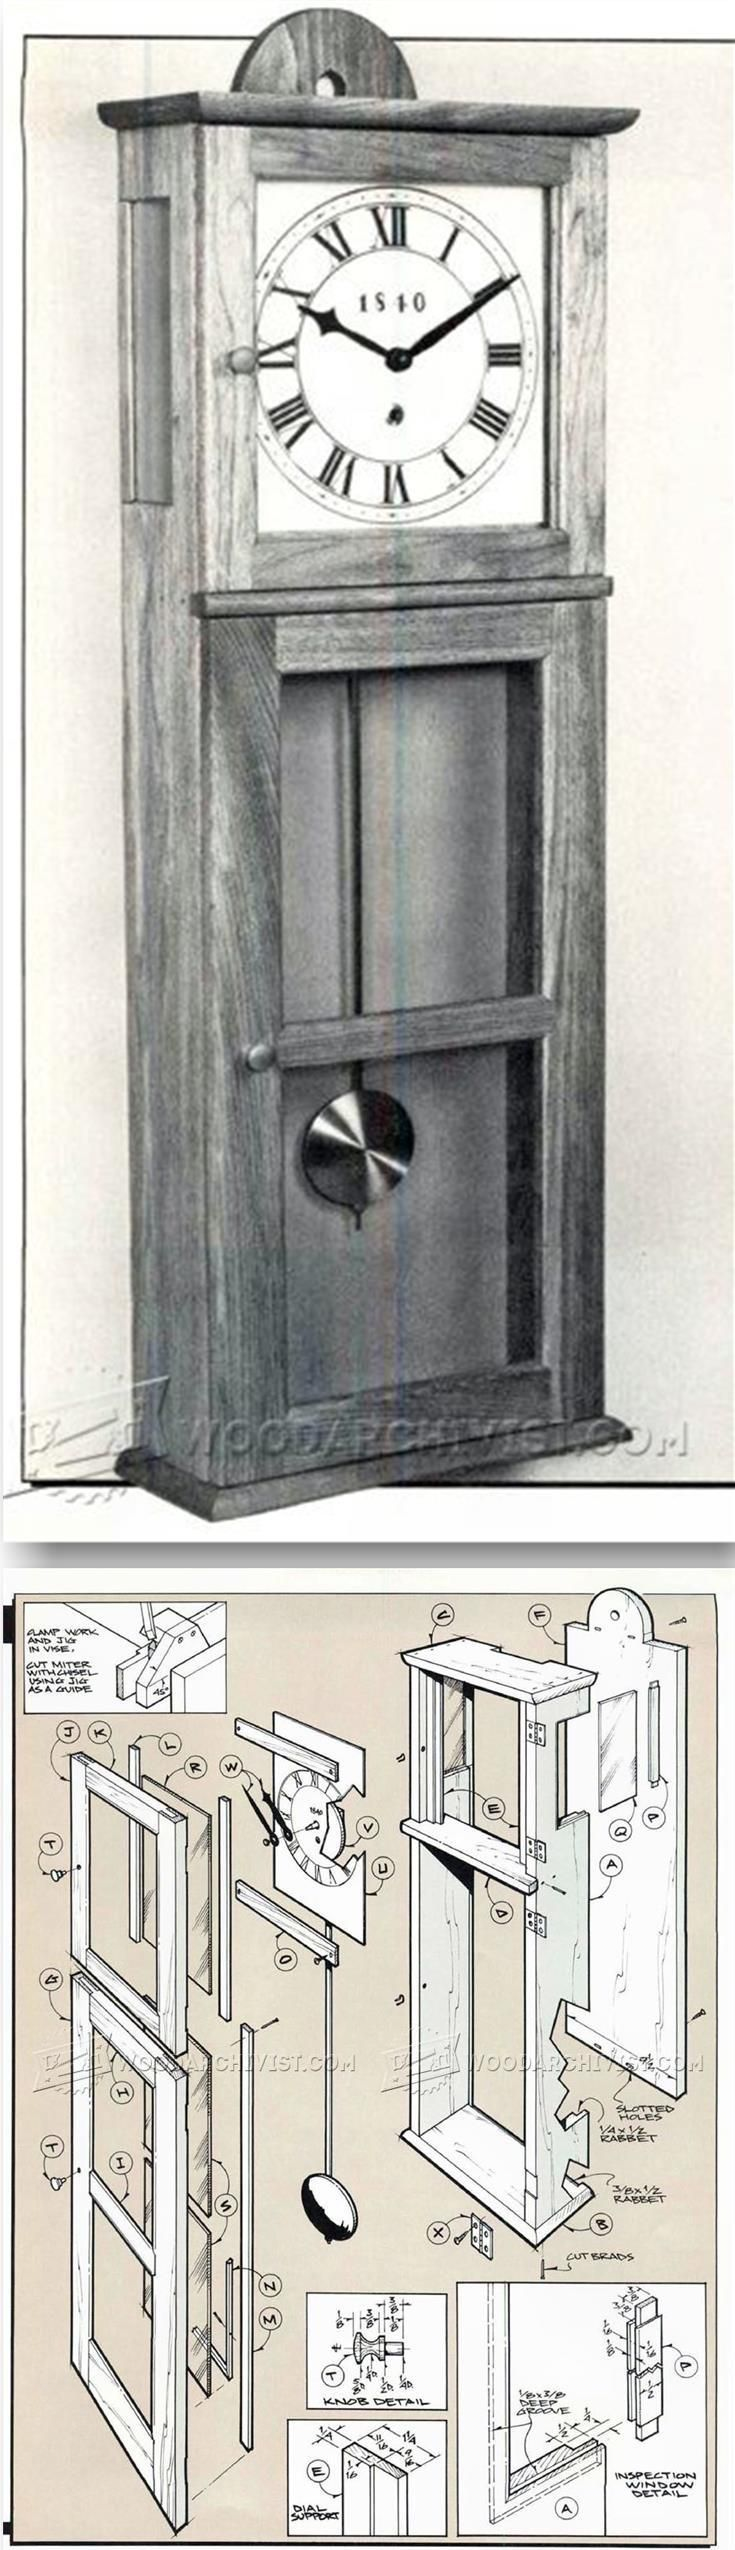 Shaker wall clock plans woodworking plans and projects shaker wall clock plans woodworking plans and projects woodarchivist amipublicfo Image collections